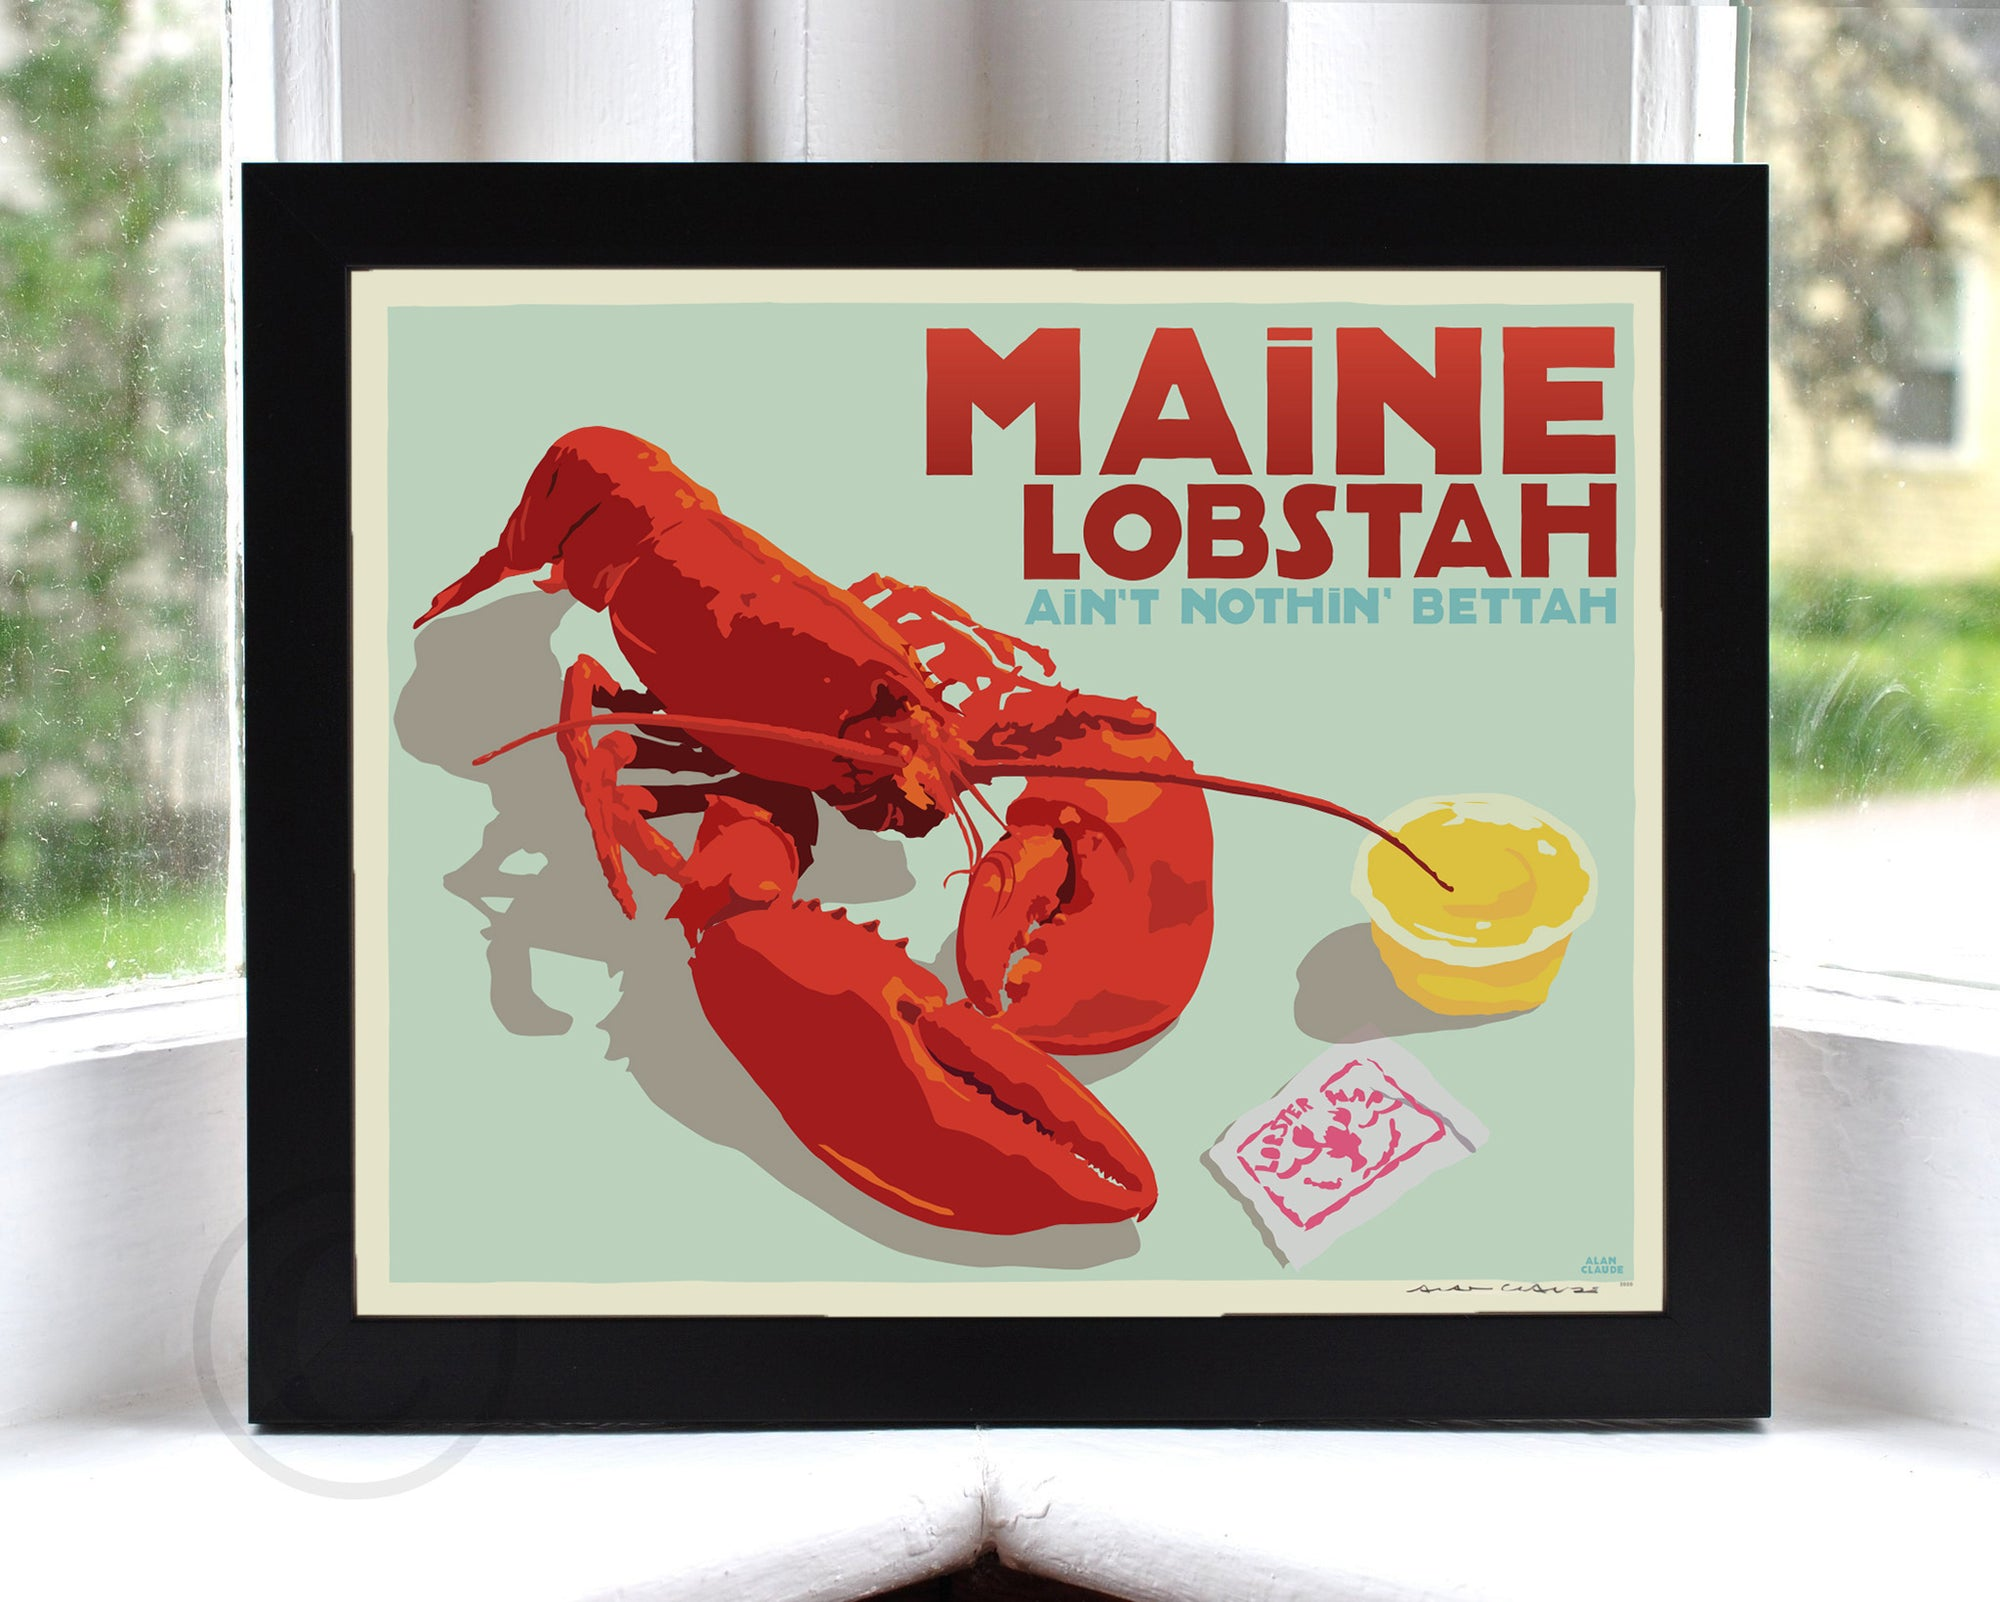 "Maine Lobstah with Butter Art Print (Horizontal) 8"" x 10"" Framed Wall Poster By Alan Claude"